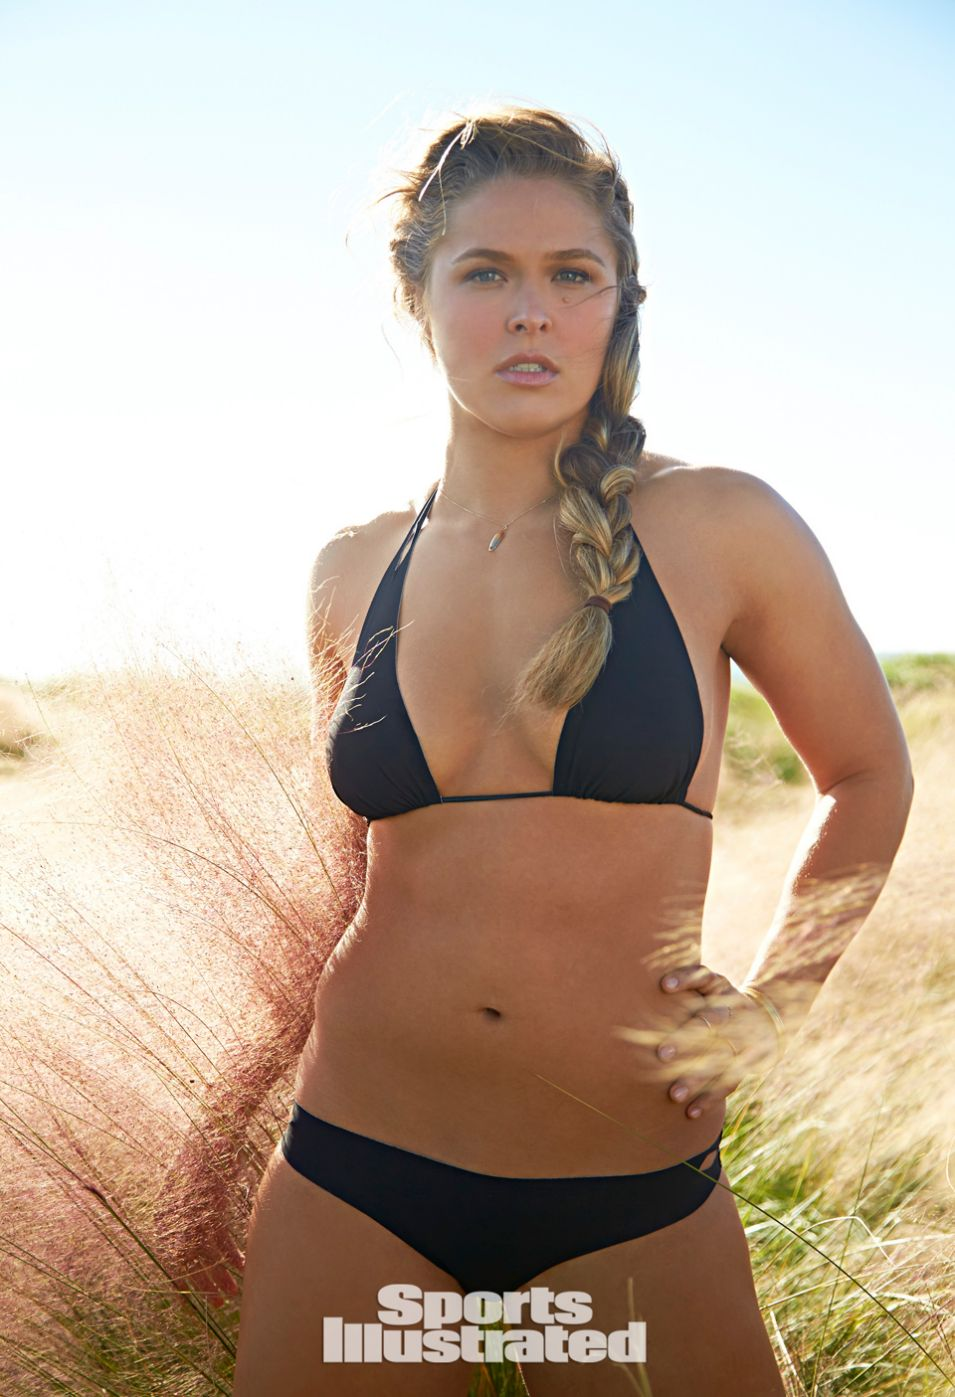 020915-UFC-ronda-rousey-swimsuit-LN-IA.vadapt.955.high.0